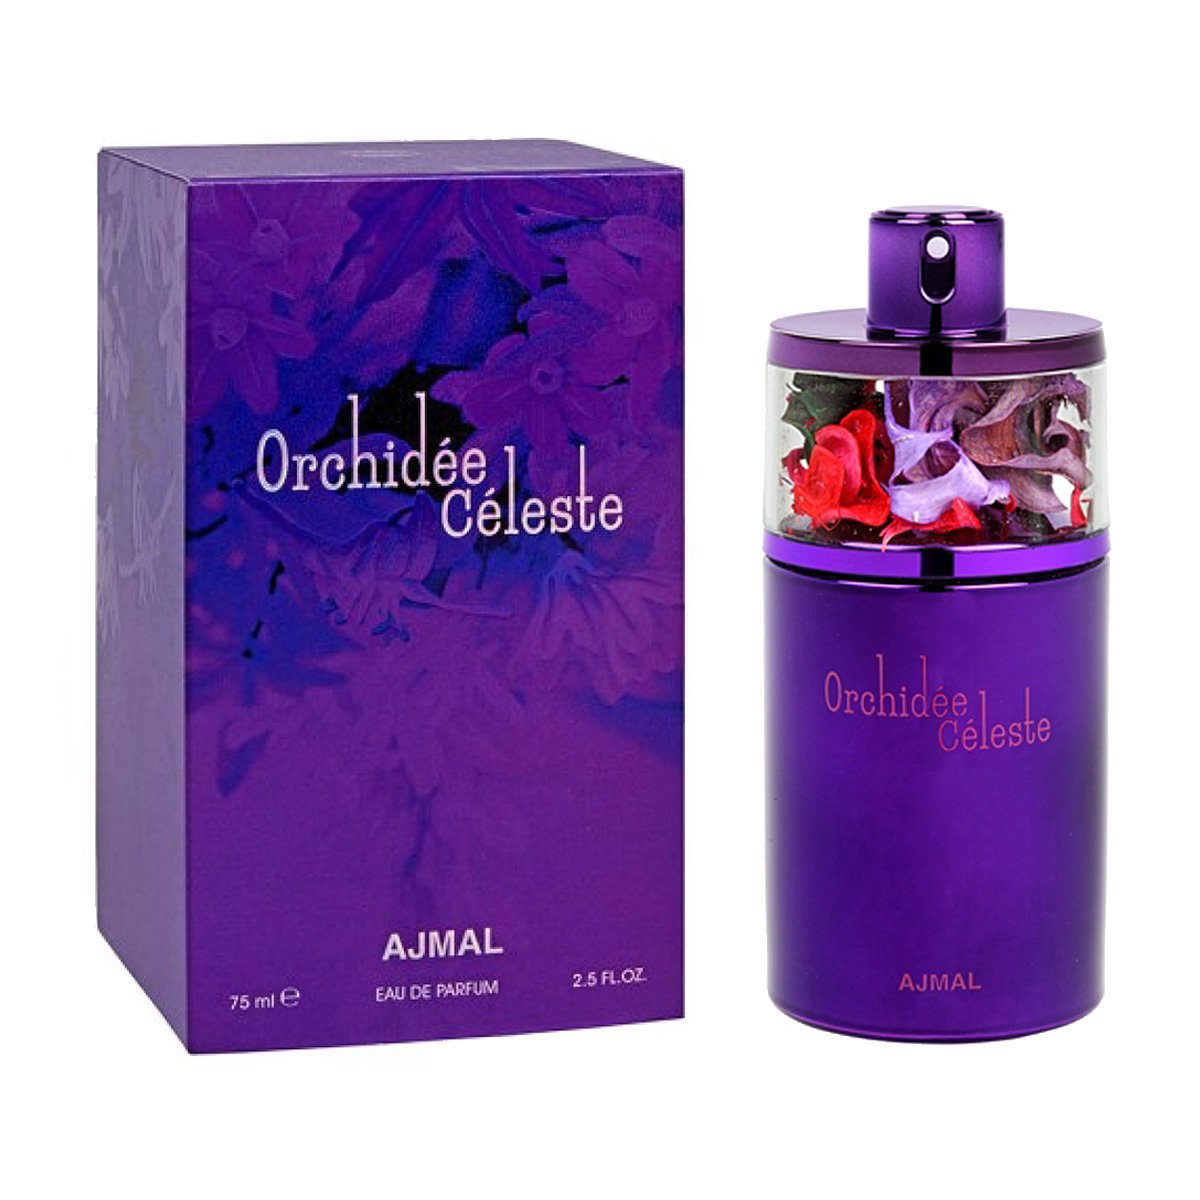 Ajmal Orchidee Celeste 75ml edp